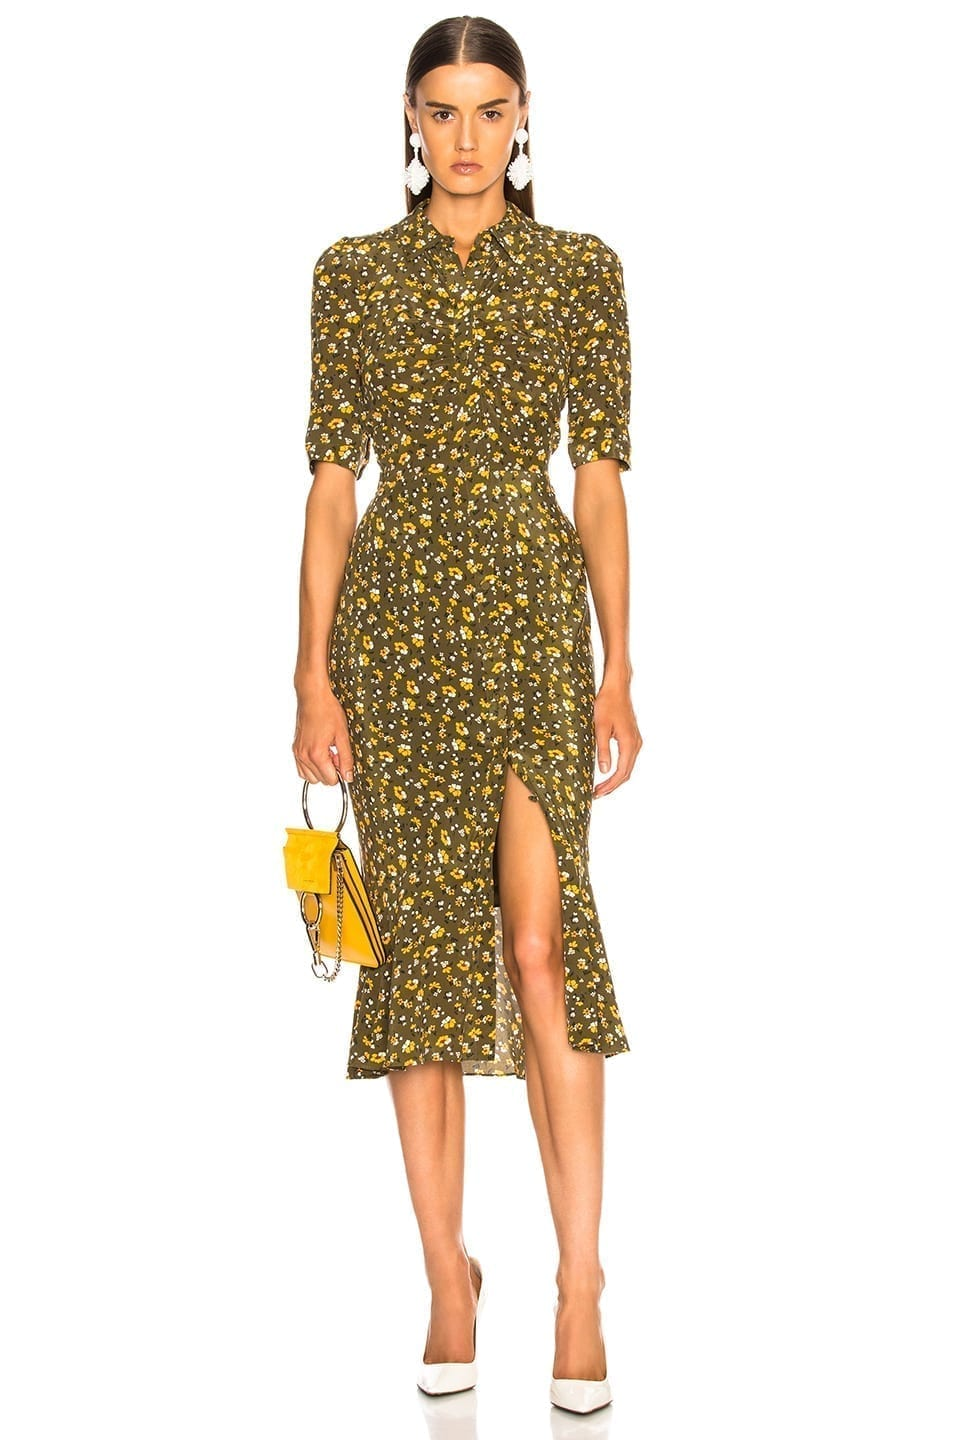 VERONICA BEARD Pike Army Green / Foloral Printed Dress